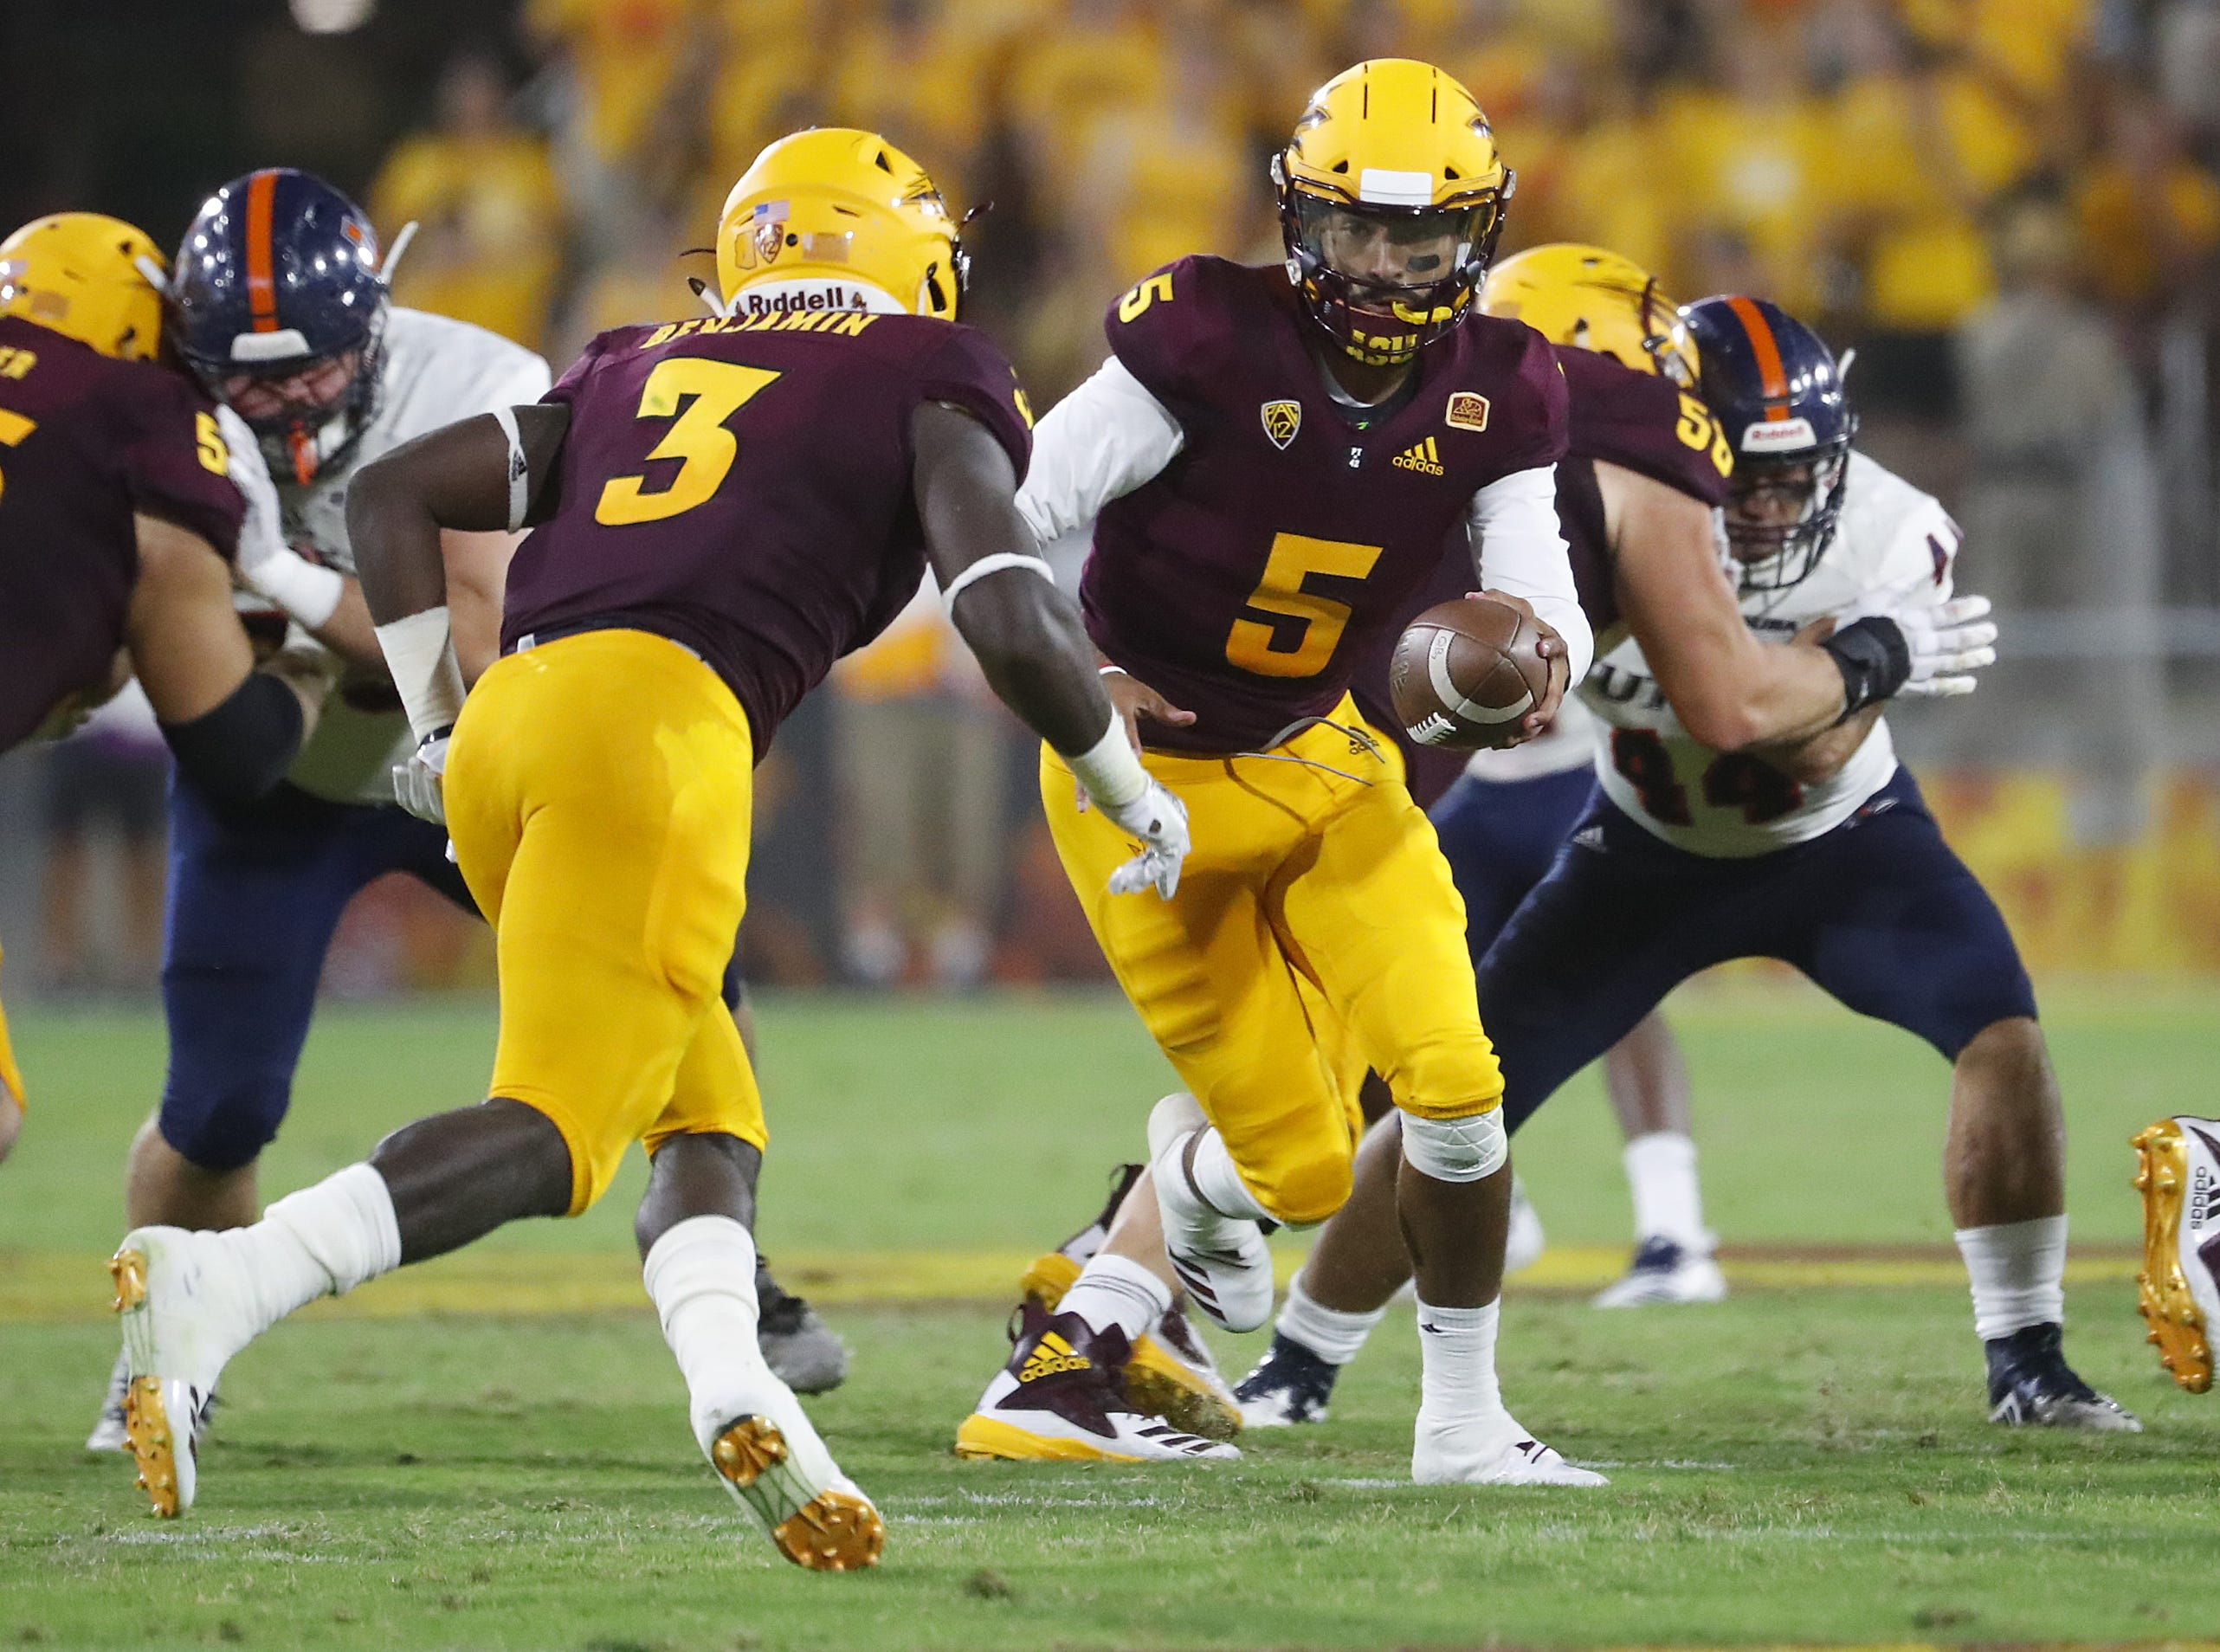 Arizona State Sun Devils quarterback Manny Wilkins (5) hands the ball off to Arizona State Sun Devils running back Eno Benjamin (3) during the first half against UTSA at Sun Devil Stadium in Tempe, Ariz. on Sept. 1, 2018.